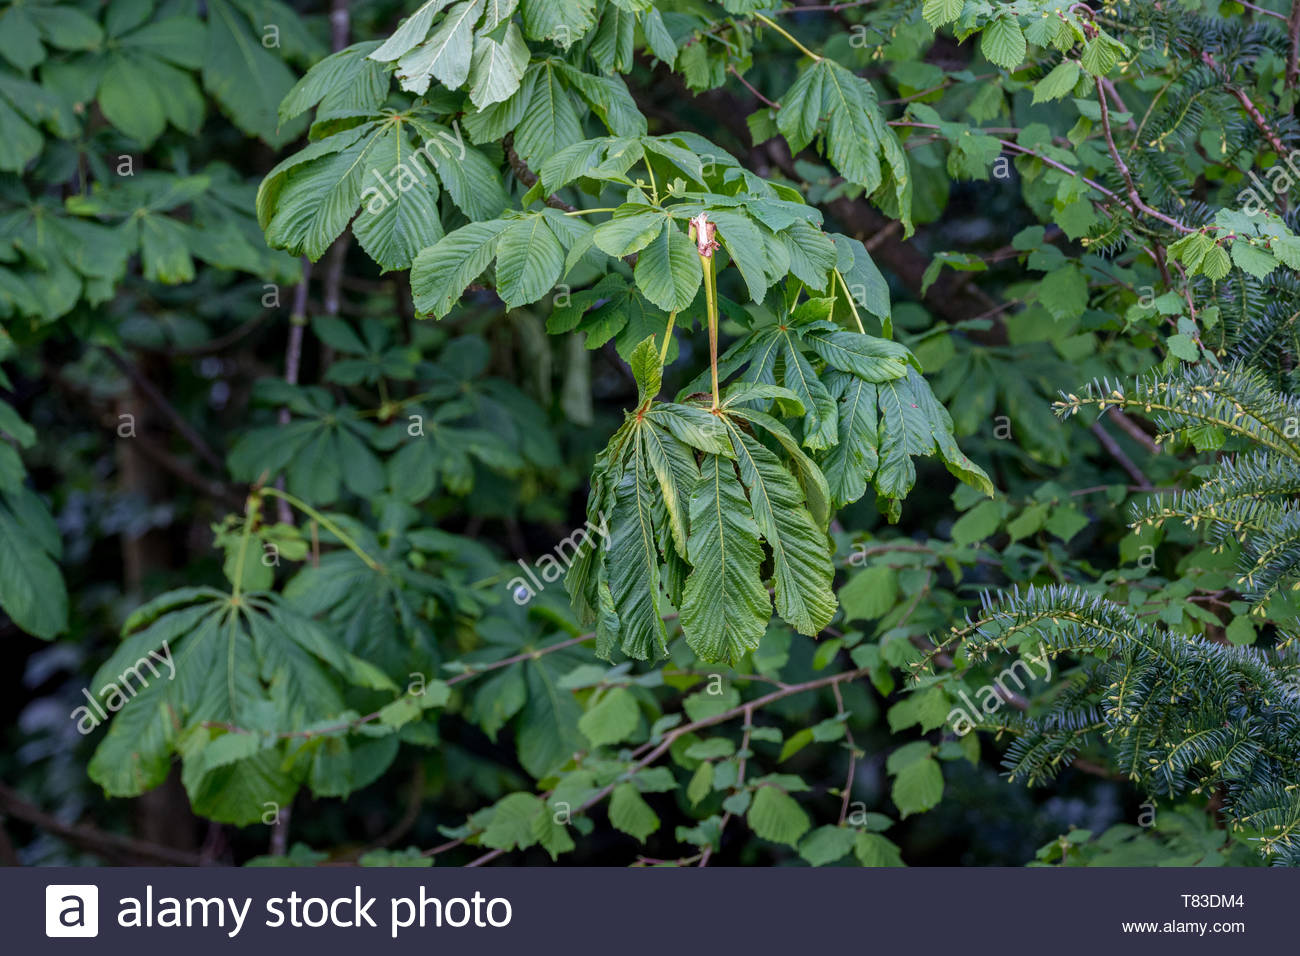 Illustration of the damage caused by grey squirrels (Sciurus carolinensis) to a Horse Chestnut tree (Aesculus hippocastanum) in the UK. - Stock Image